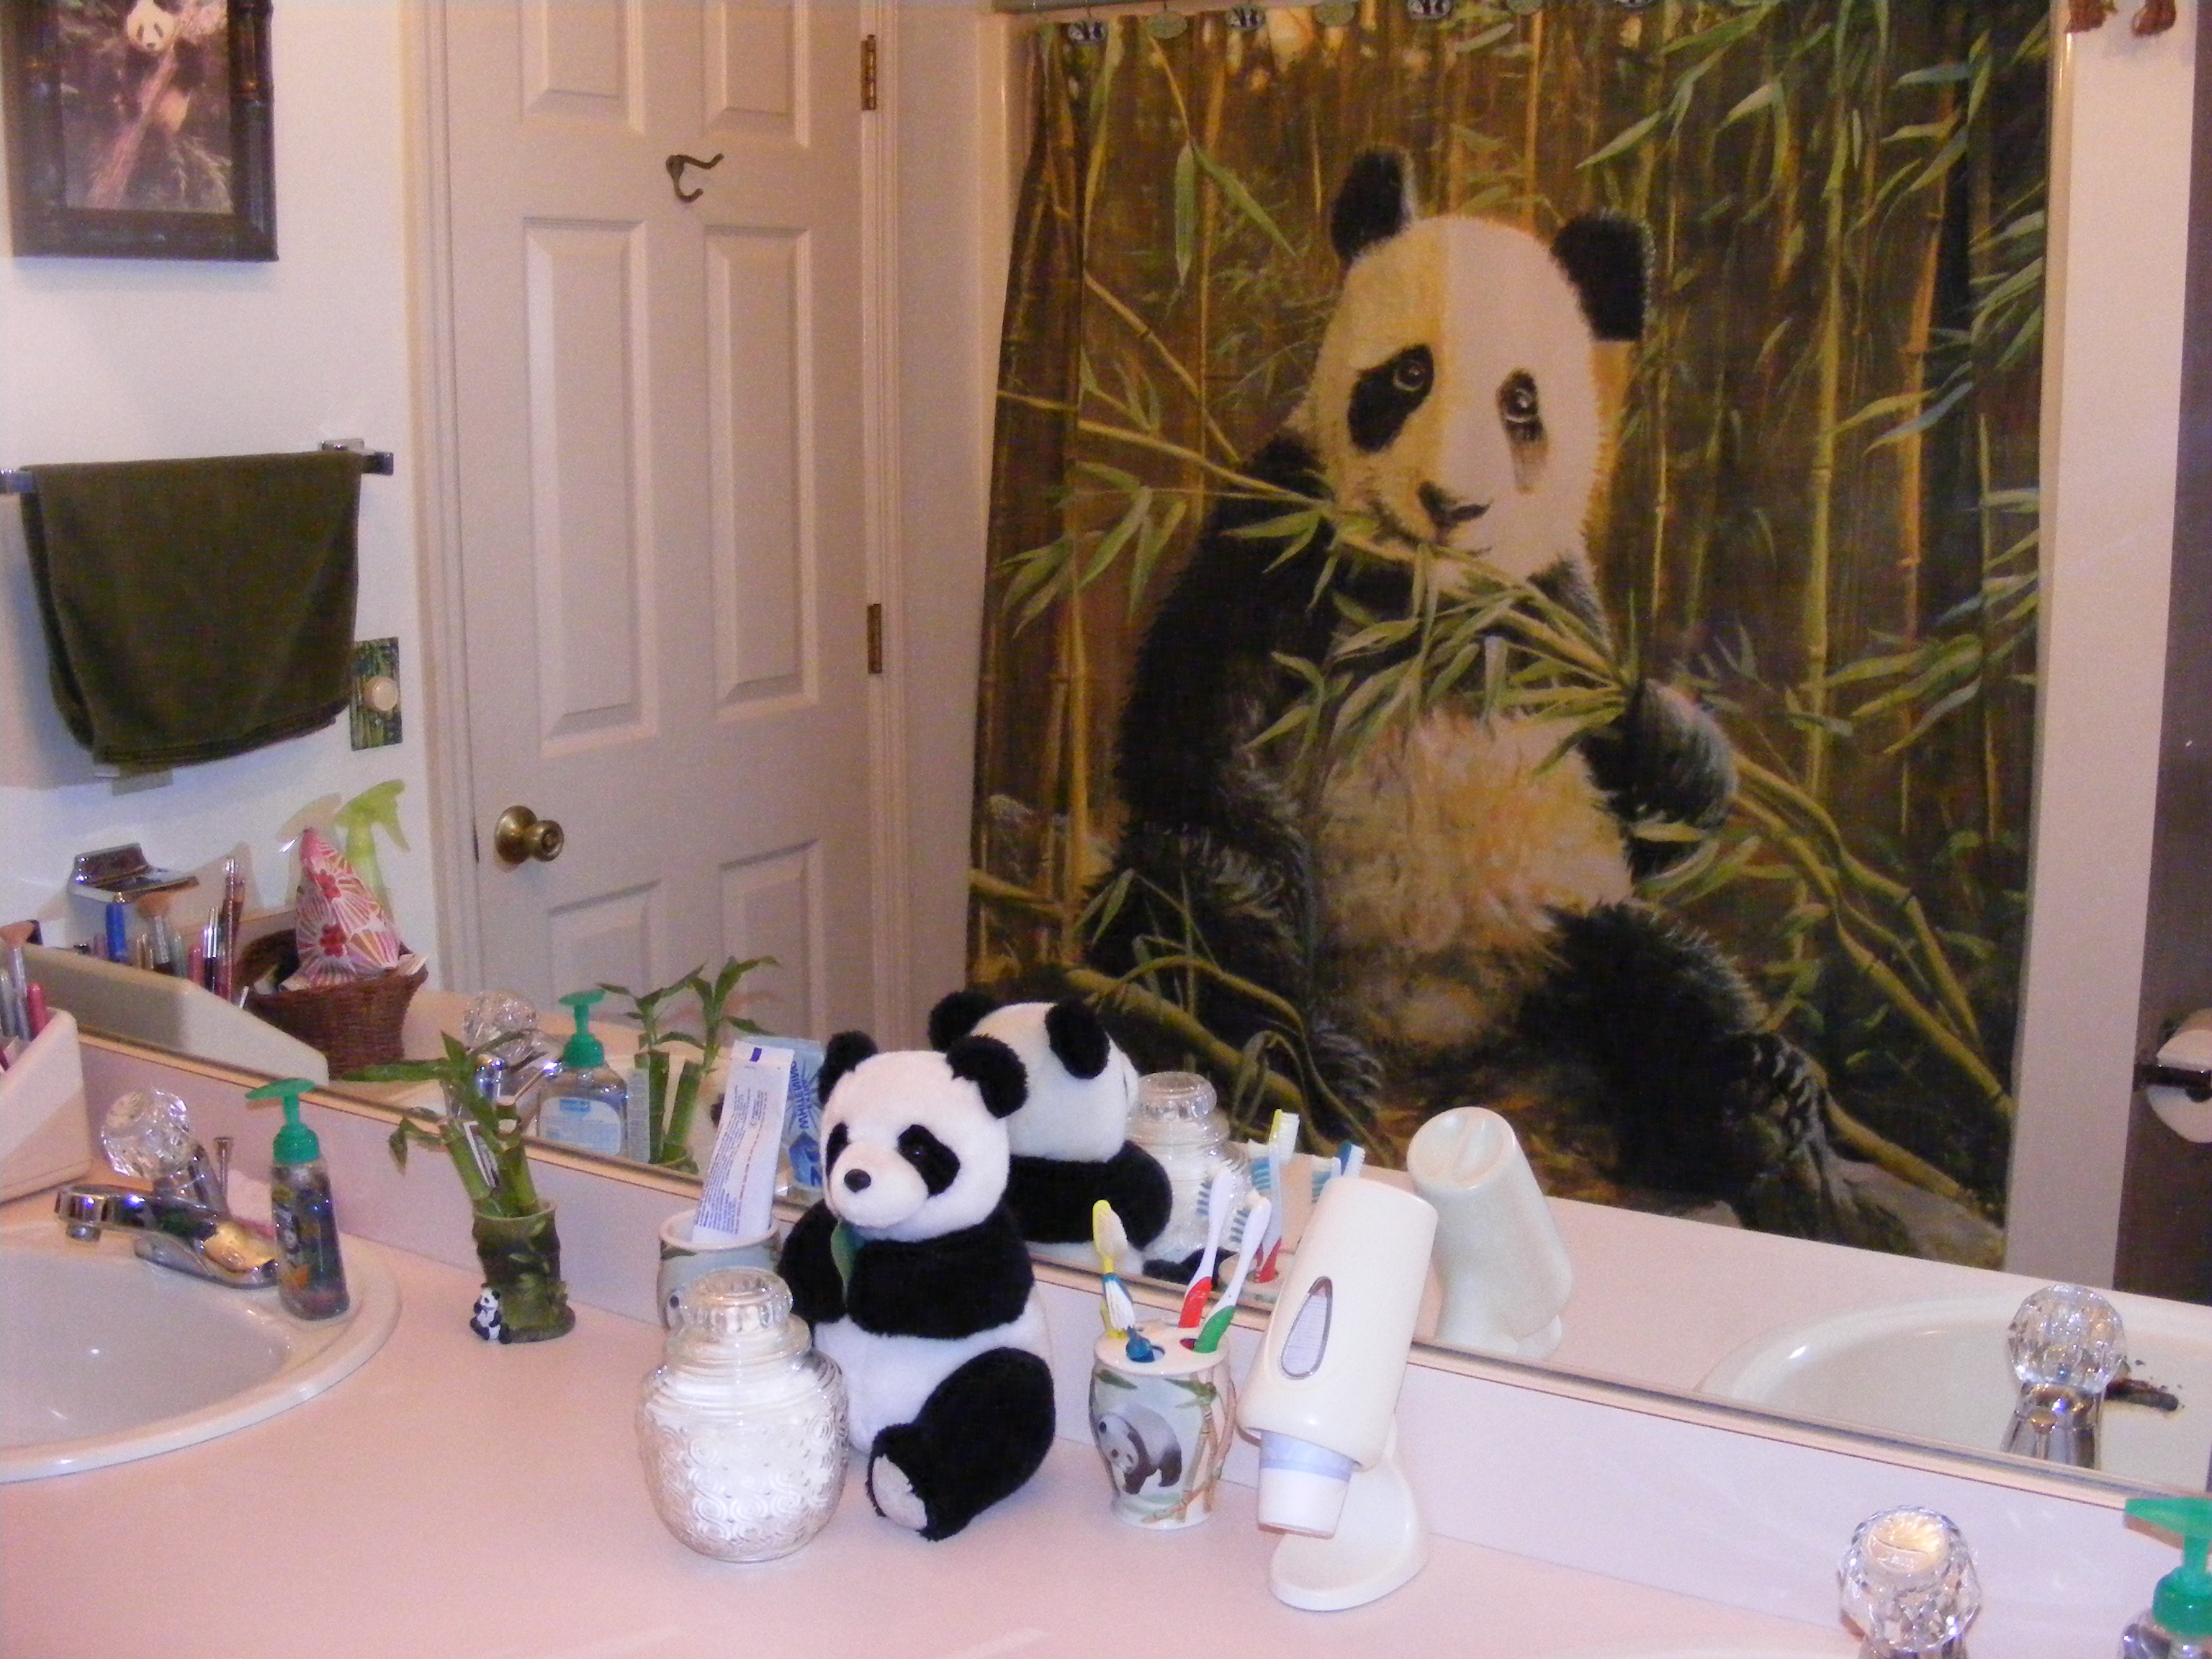 panda bathroom shower curtain reflected in mirror 3072x2304